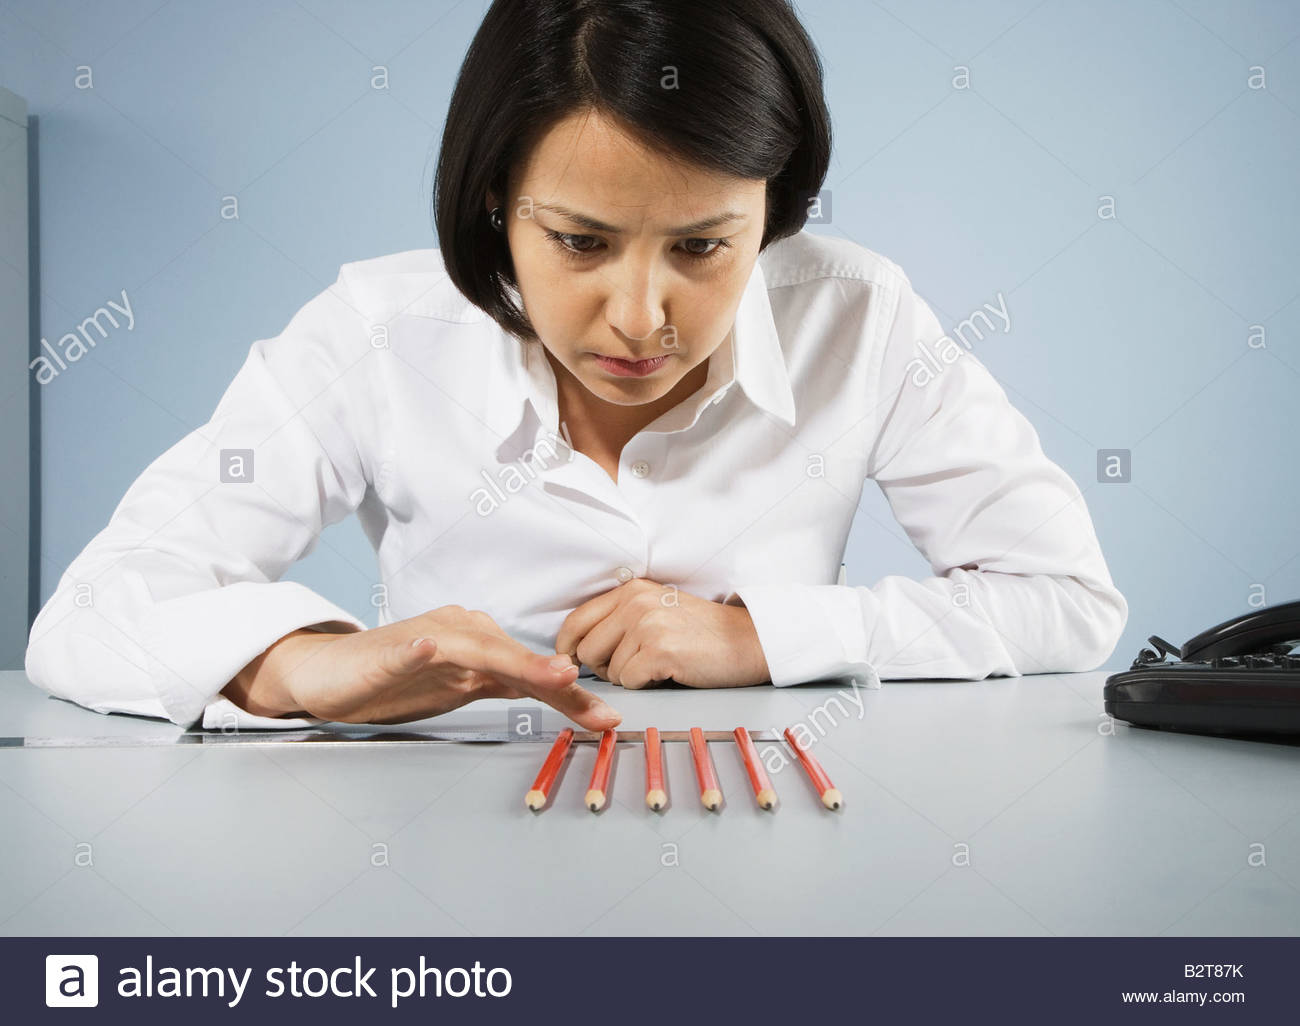 Businesswoman carefully counting pencils - Stock Image